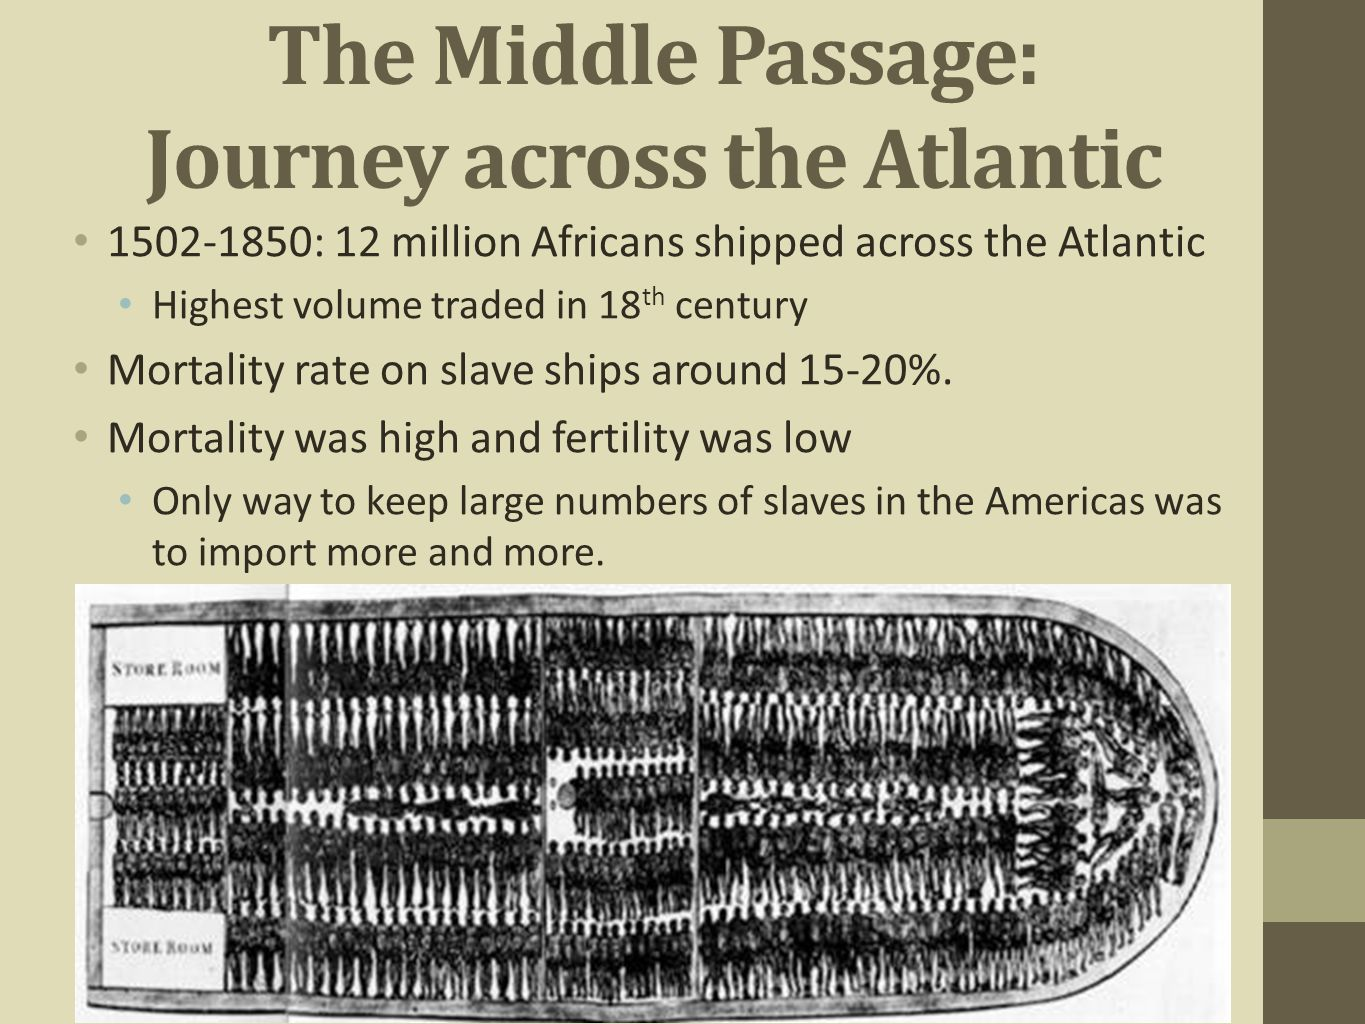 The Middle Passage: Journey across the Atlantic